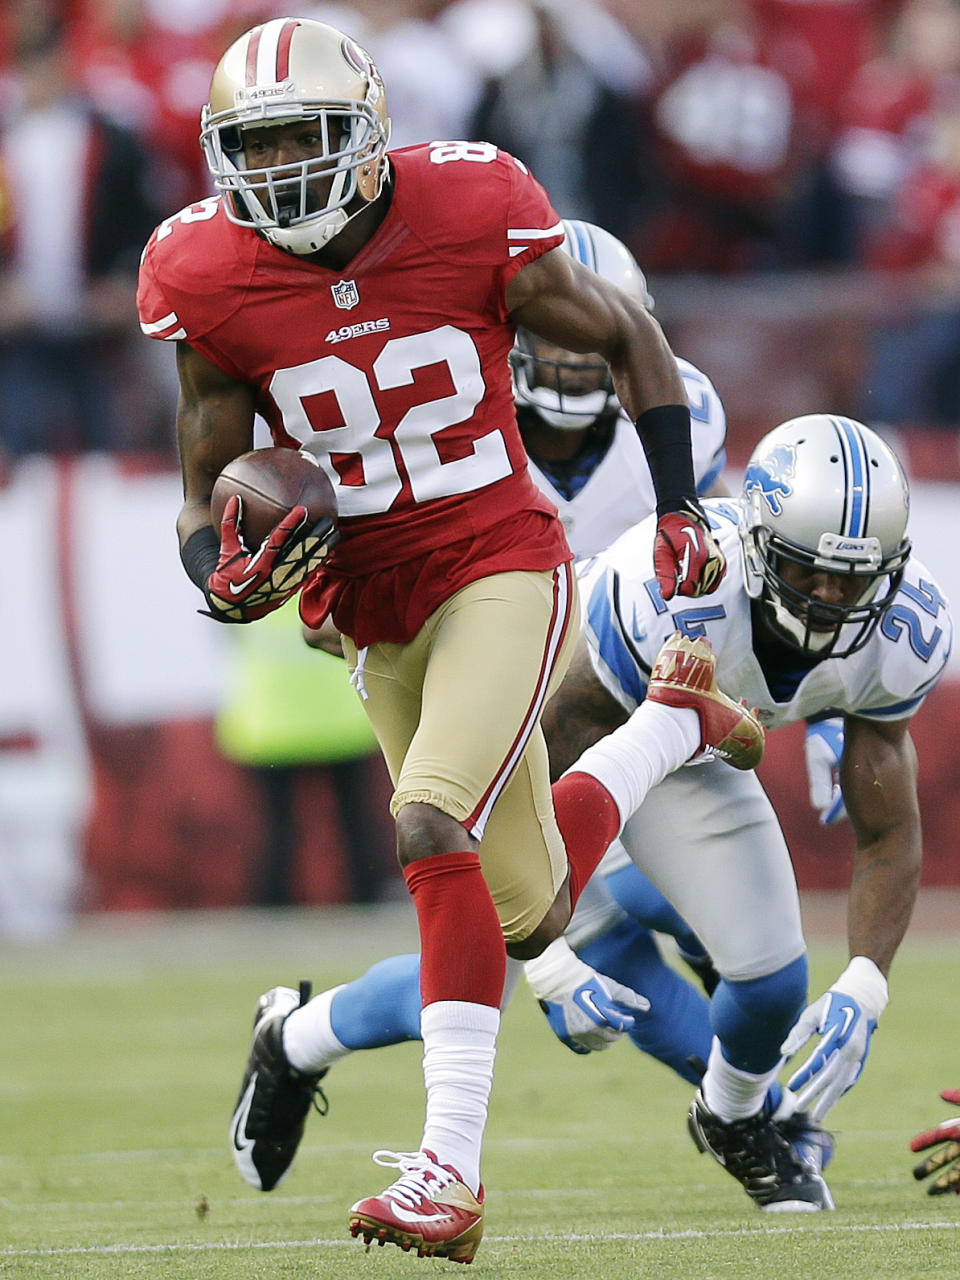 San Francisco 49ers wide receiver Mario Manningham carries the ball past Detroit Lions strong safety Erik Coleman, right, during the first quarter of an NFL football game in San Francisco, Sunday, Sept. 16, 2012. (AP Photo/Marcio Jose Sanchez)